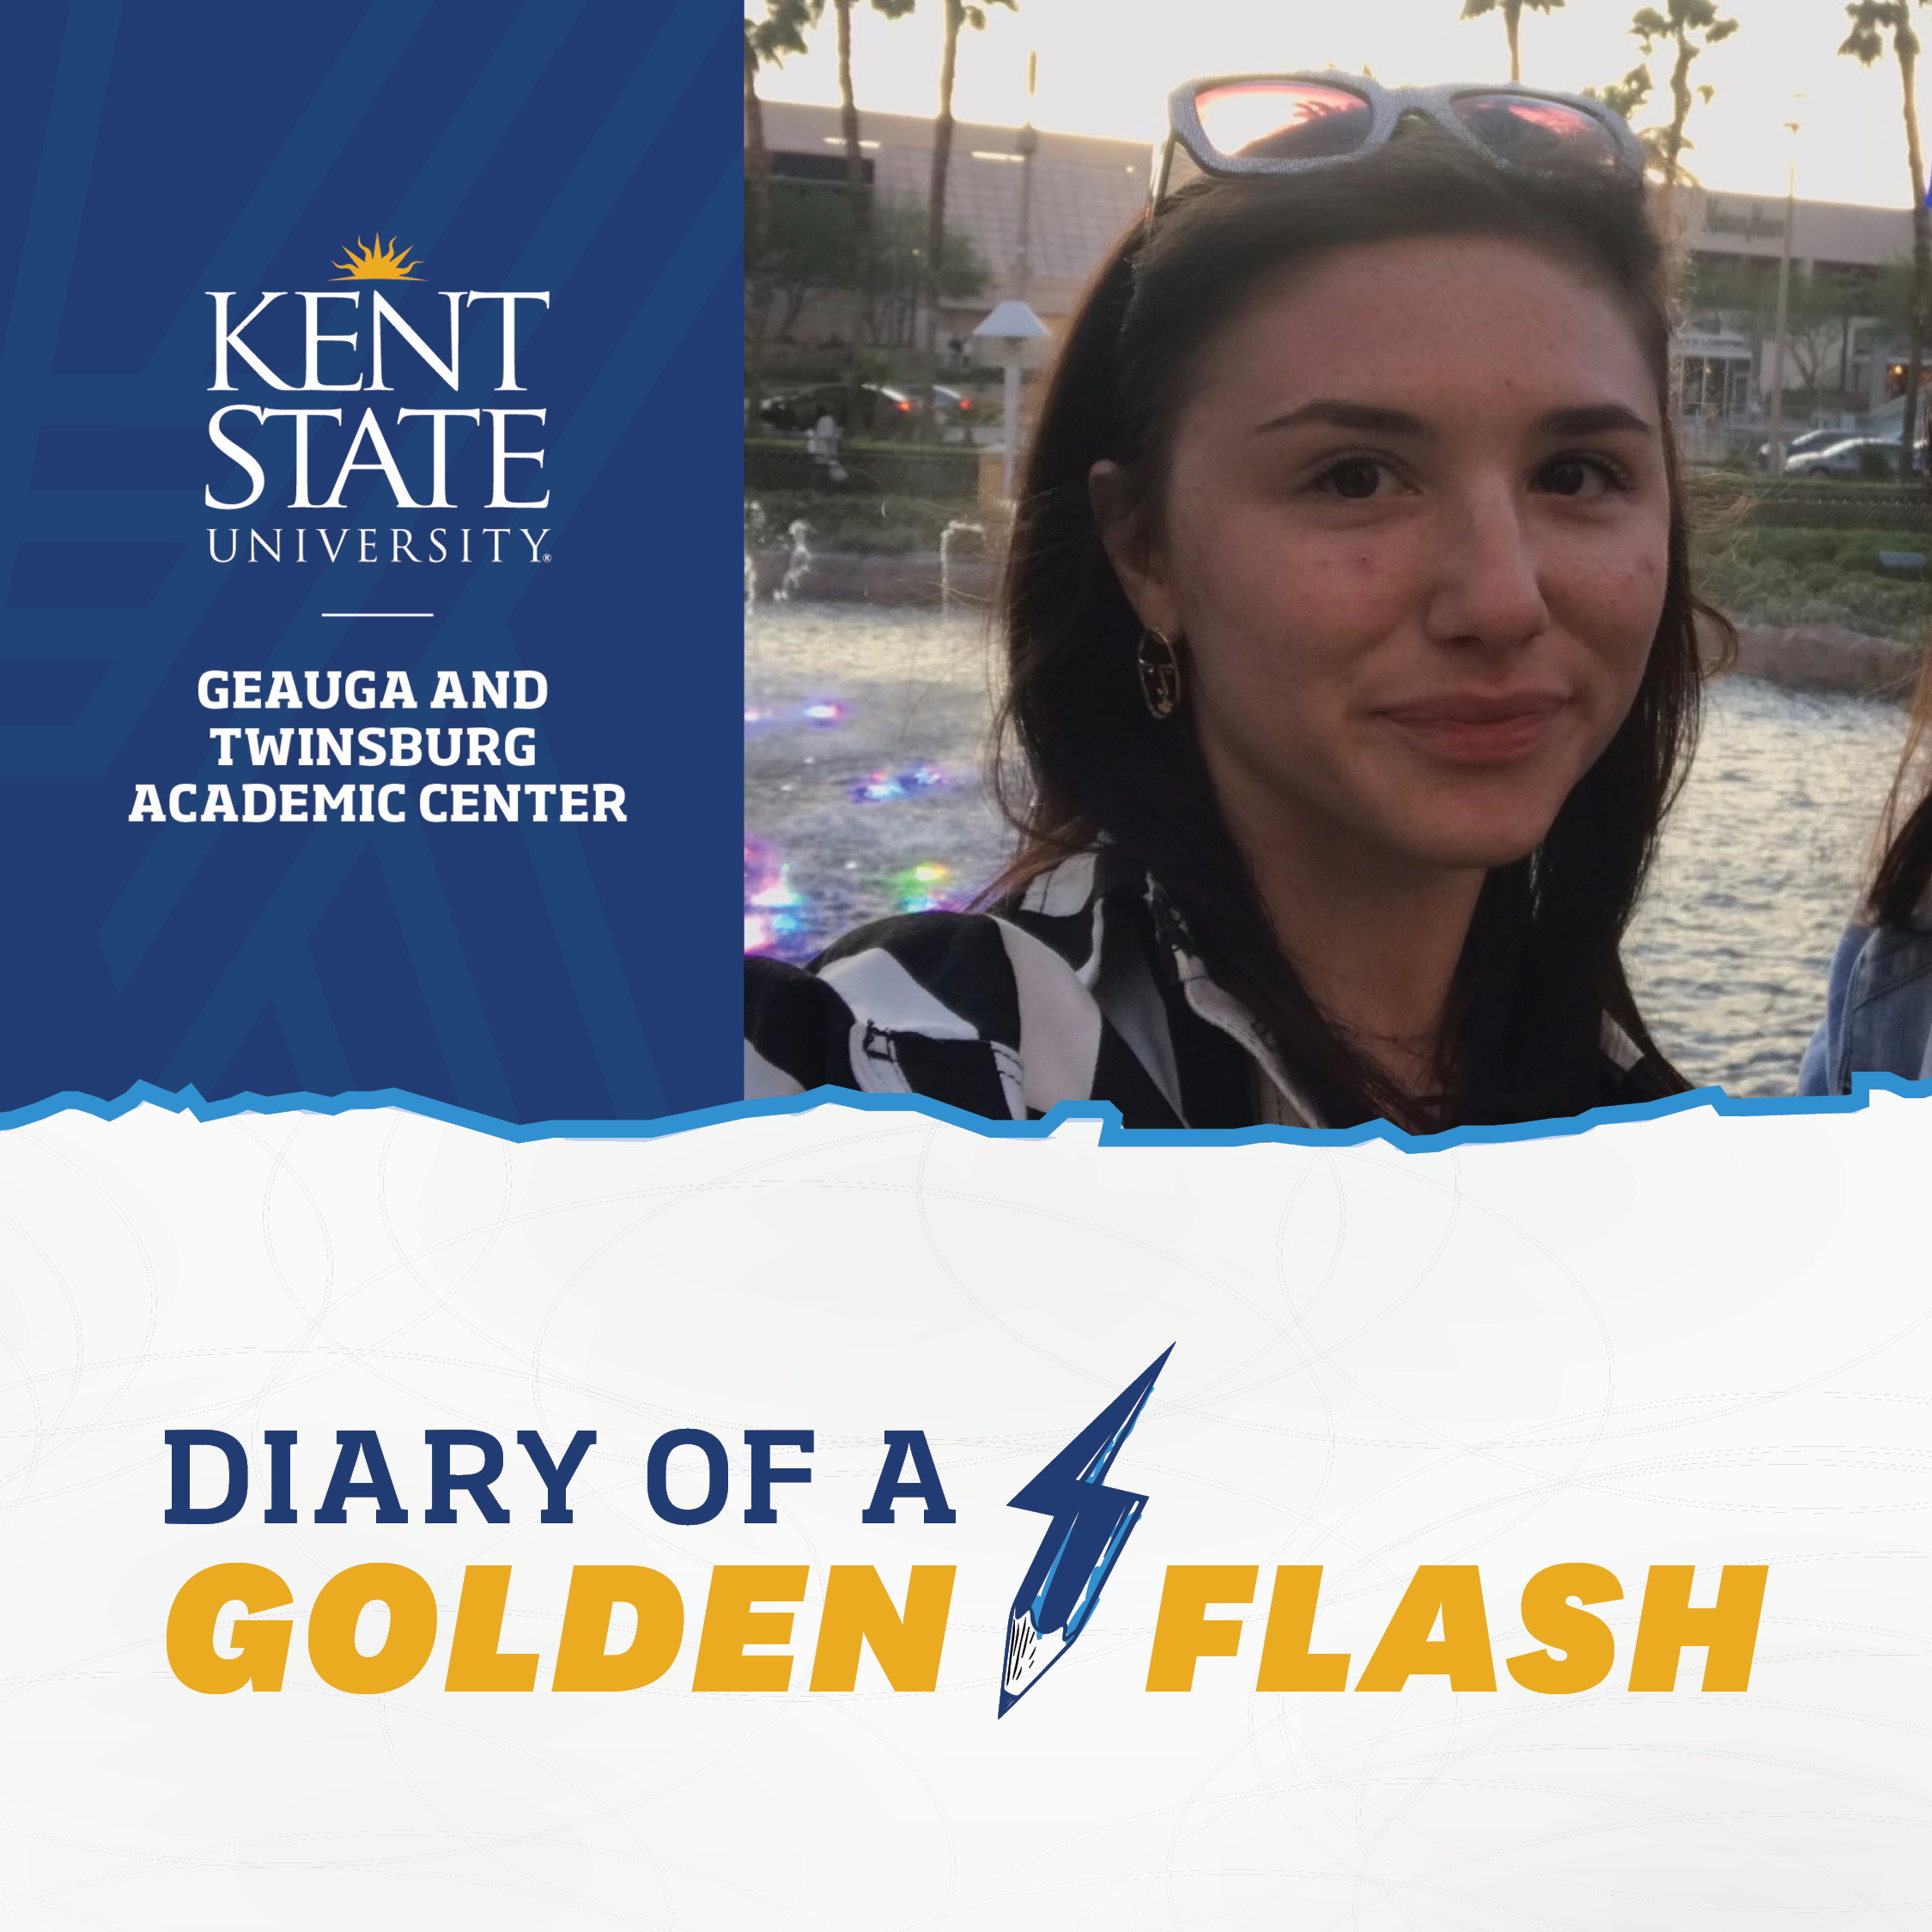 Samantha Toth Diary of a Golden Flash